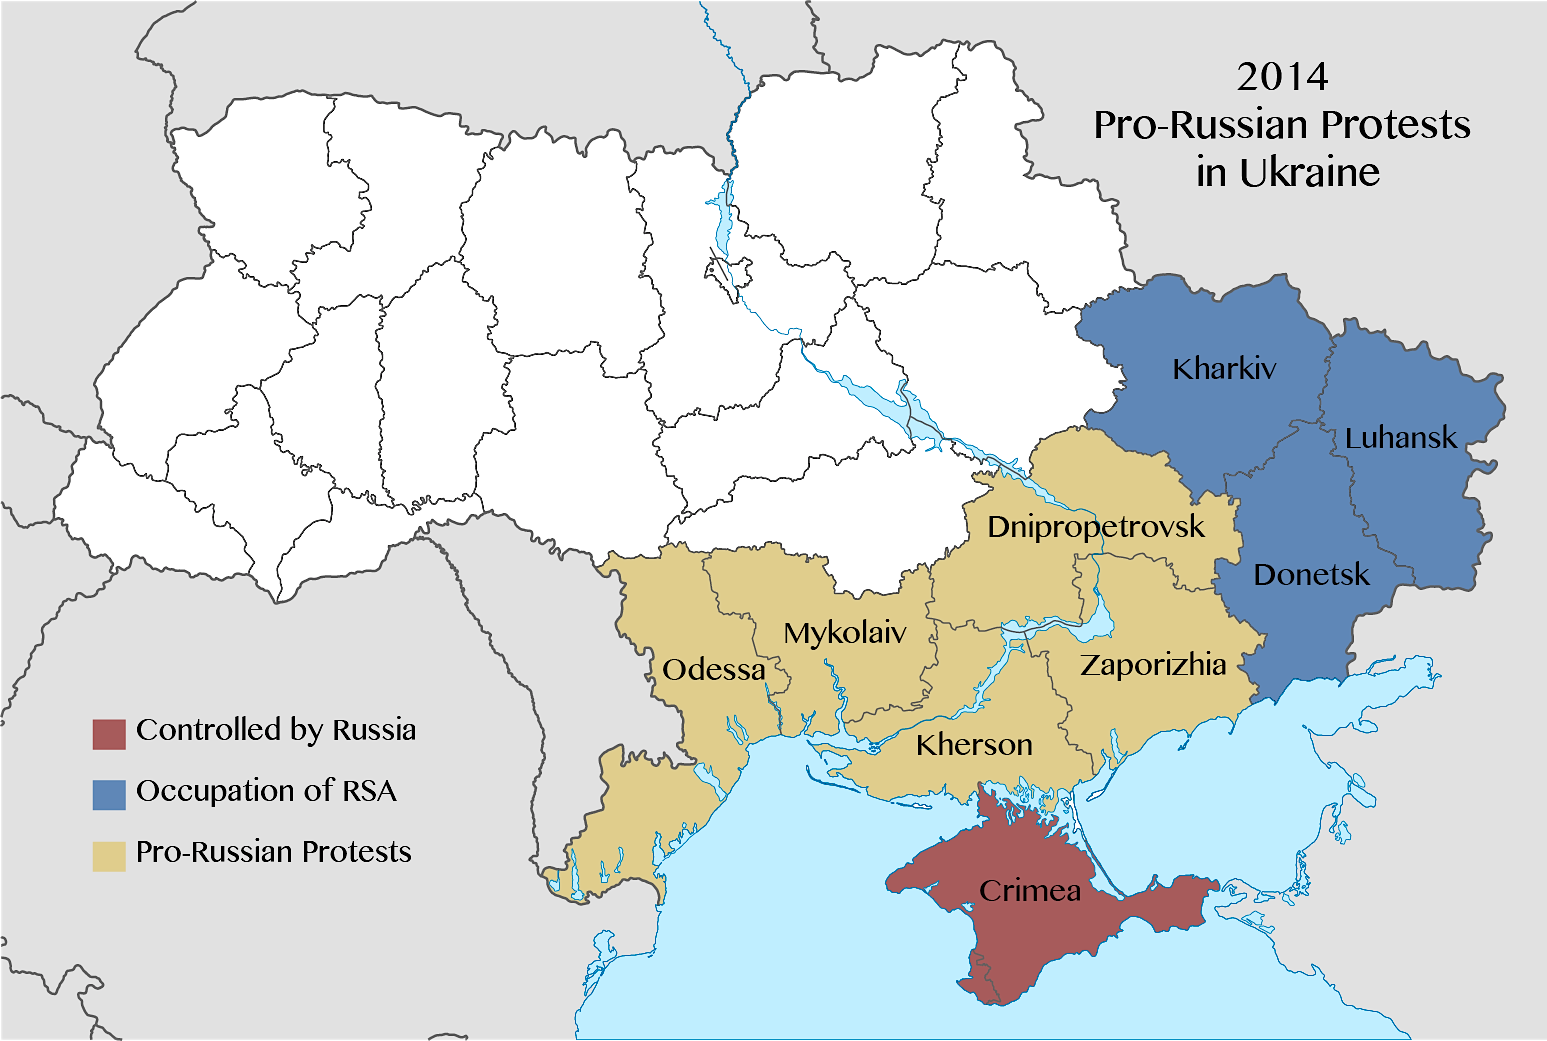 Ukraine Map-Pro-Russian Protests, Arp 2014